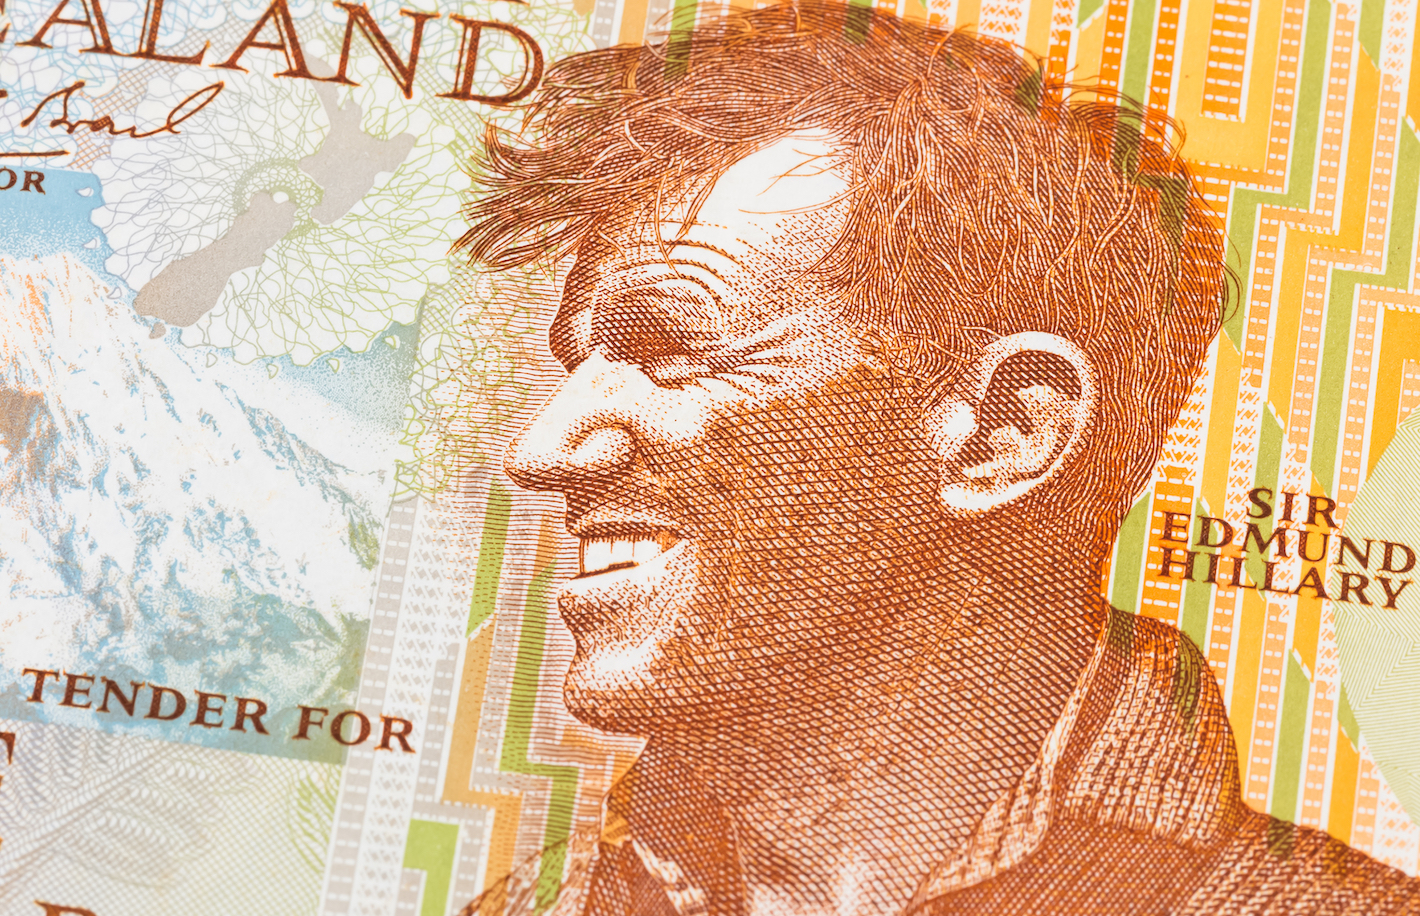 Reserve Bank of New Zealand to Consult on Potential CBDC